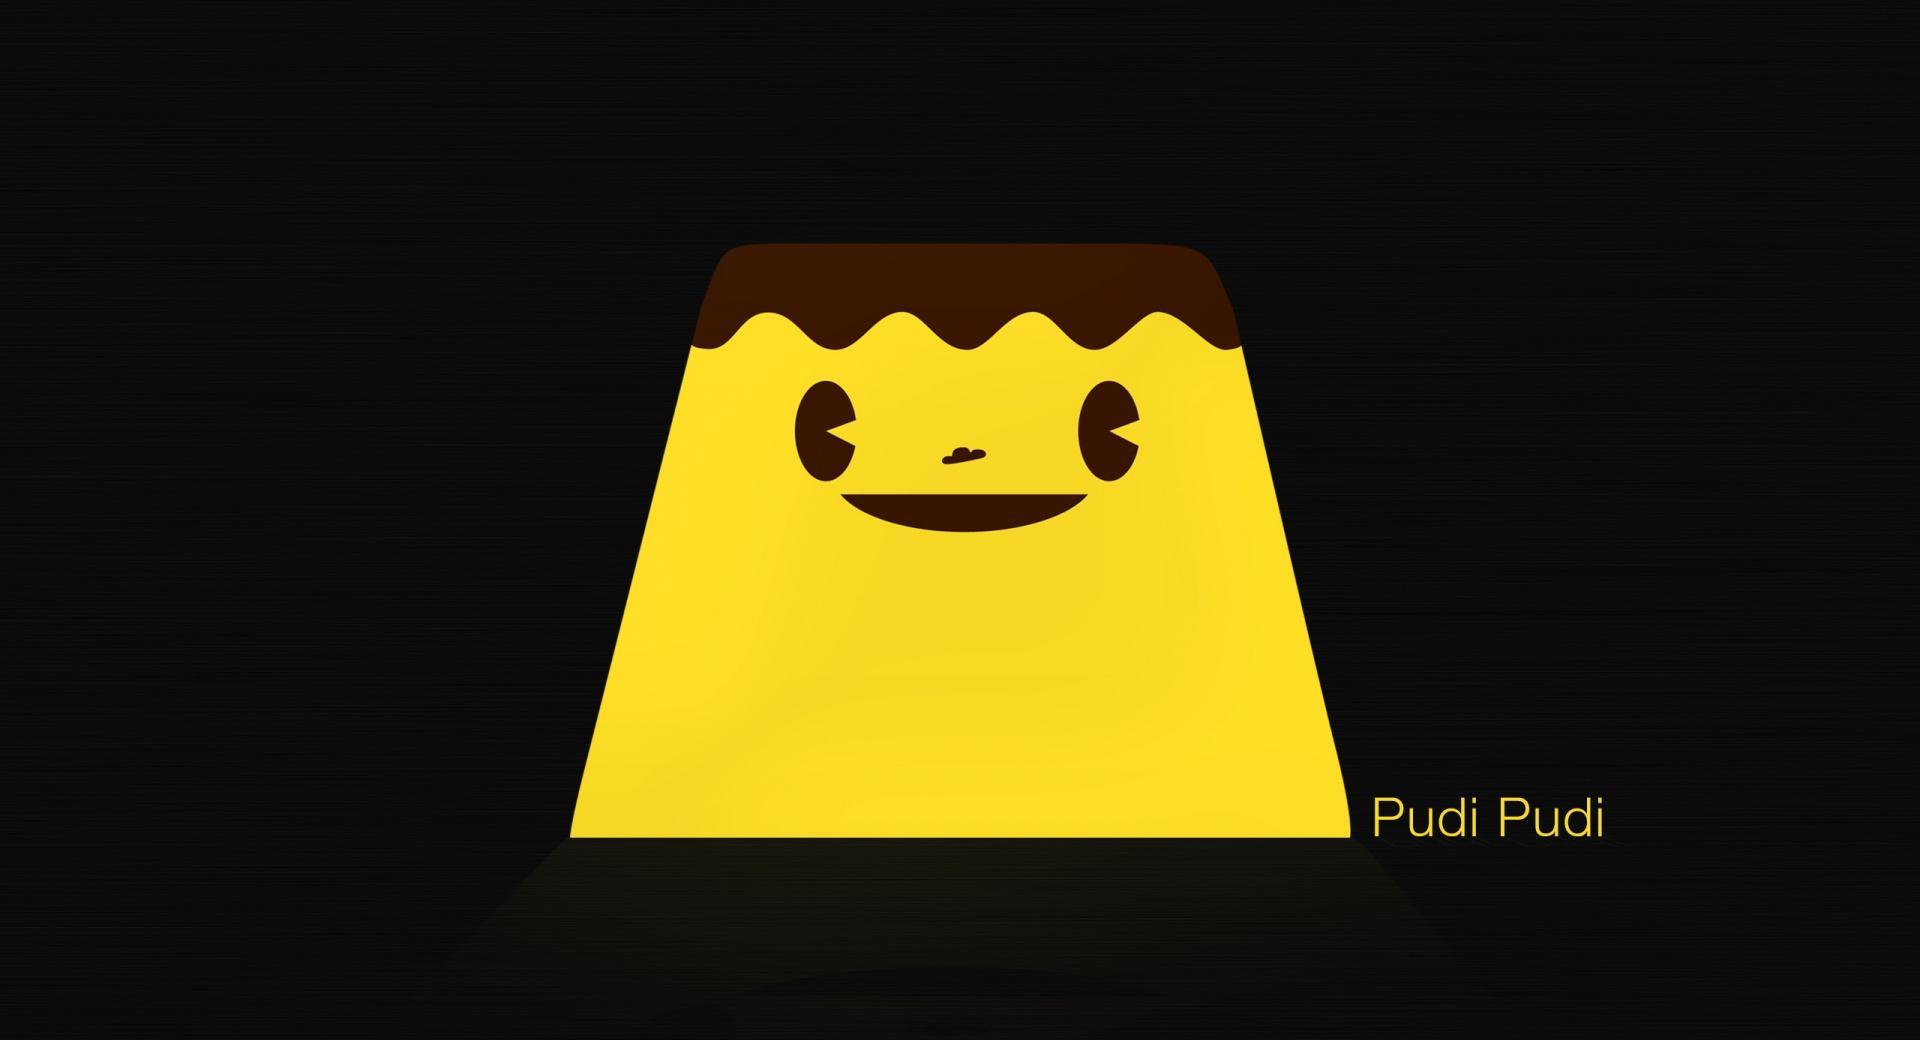 Pudding Vector Art wallpapers HD quality